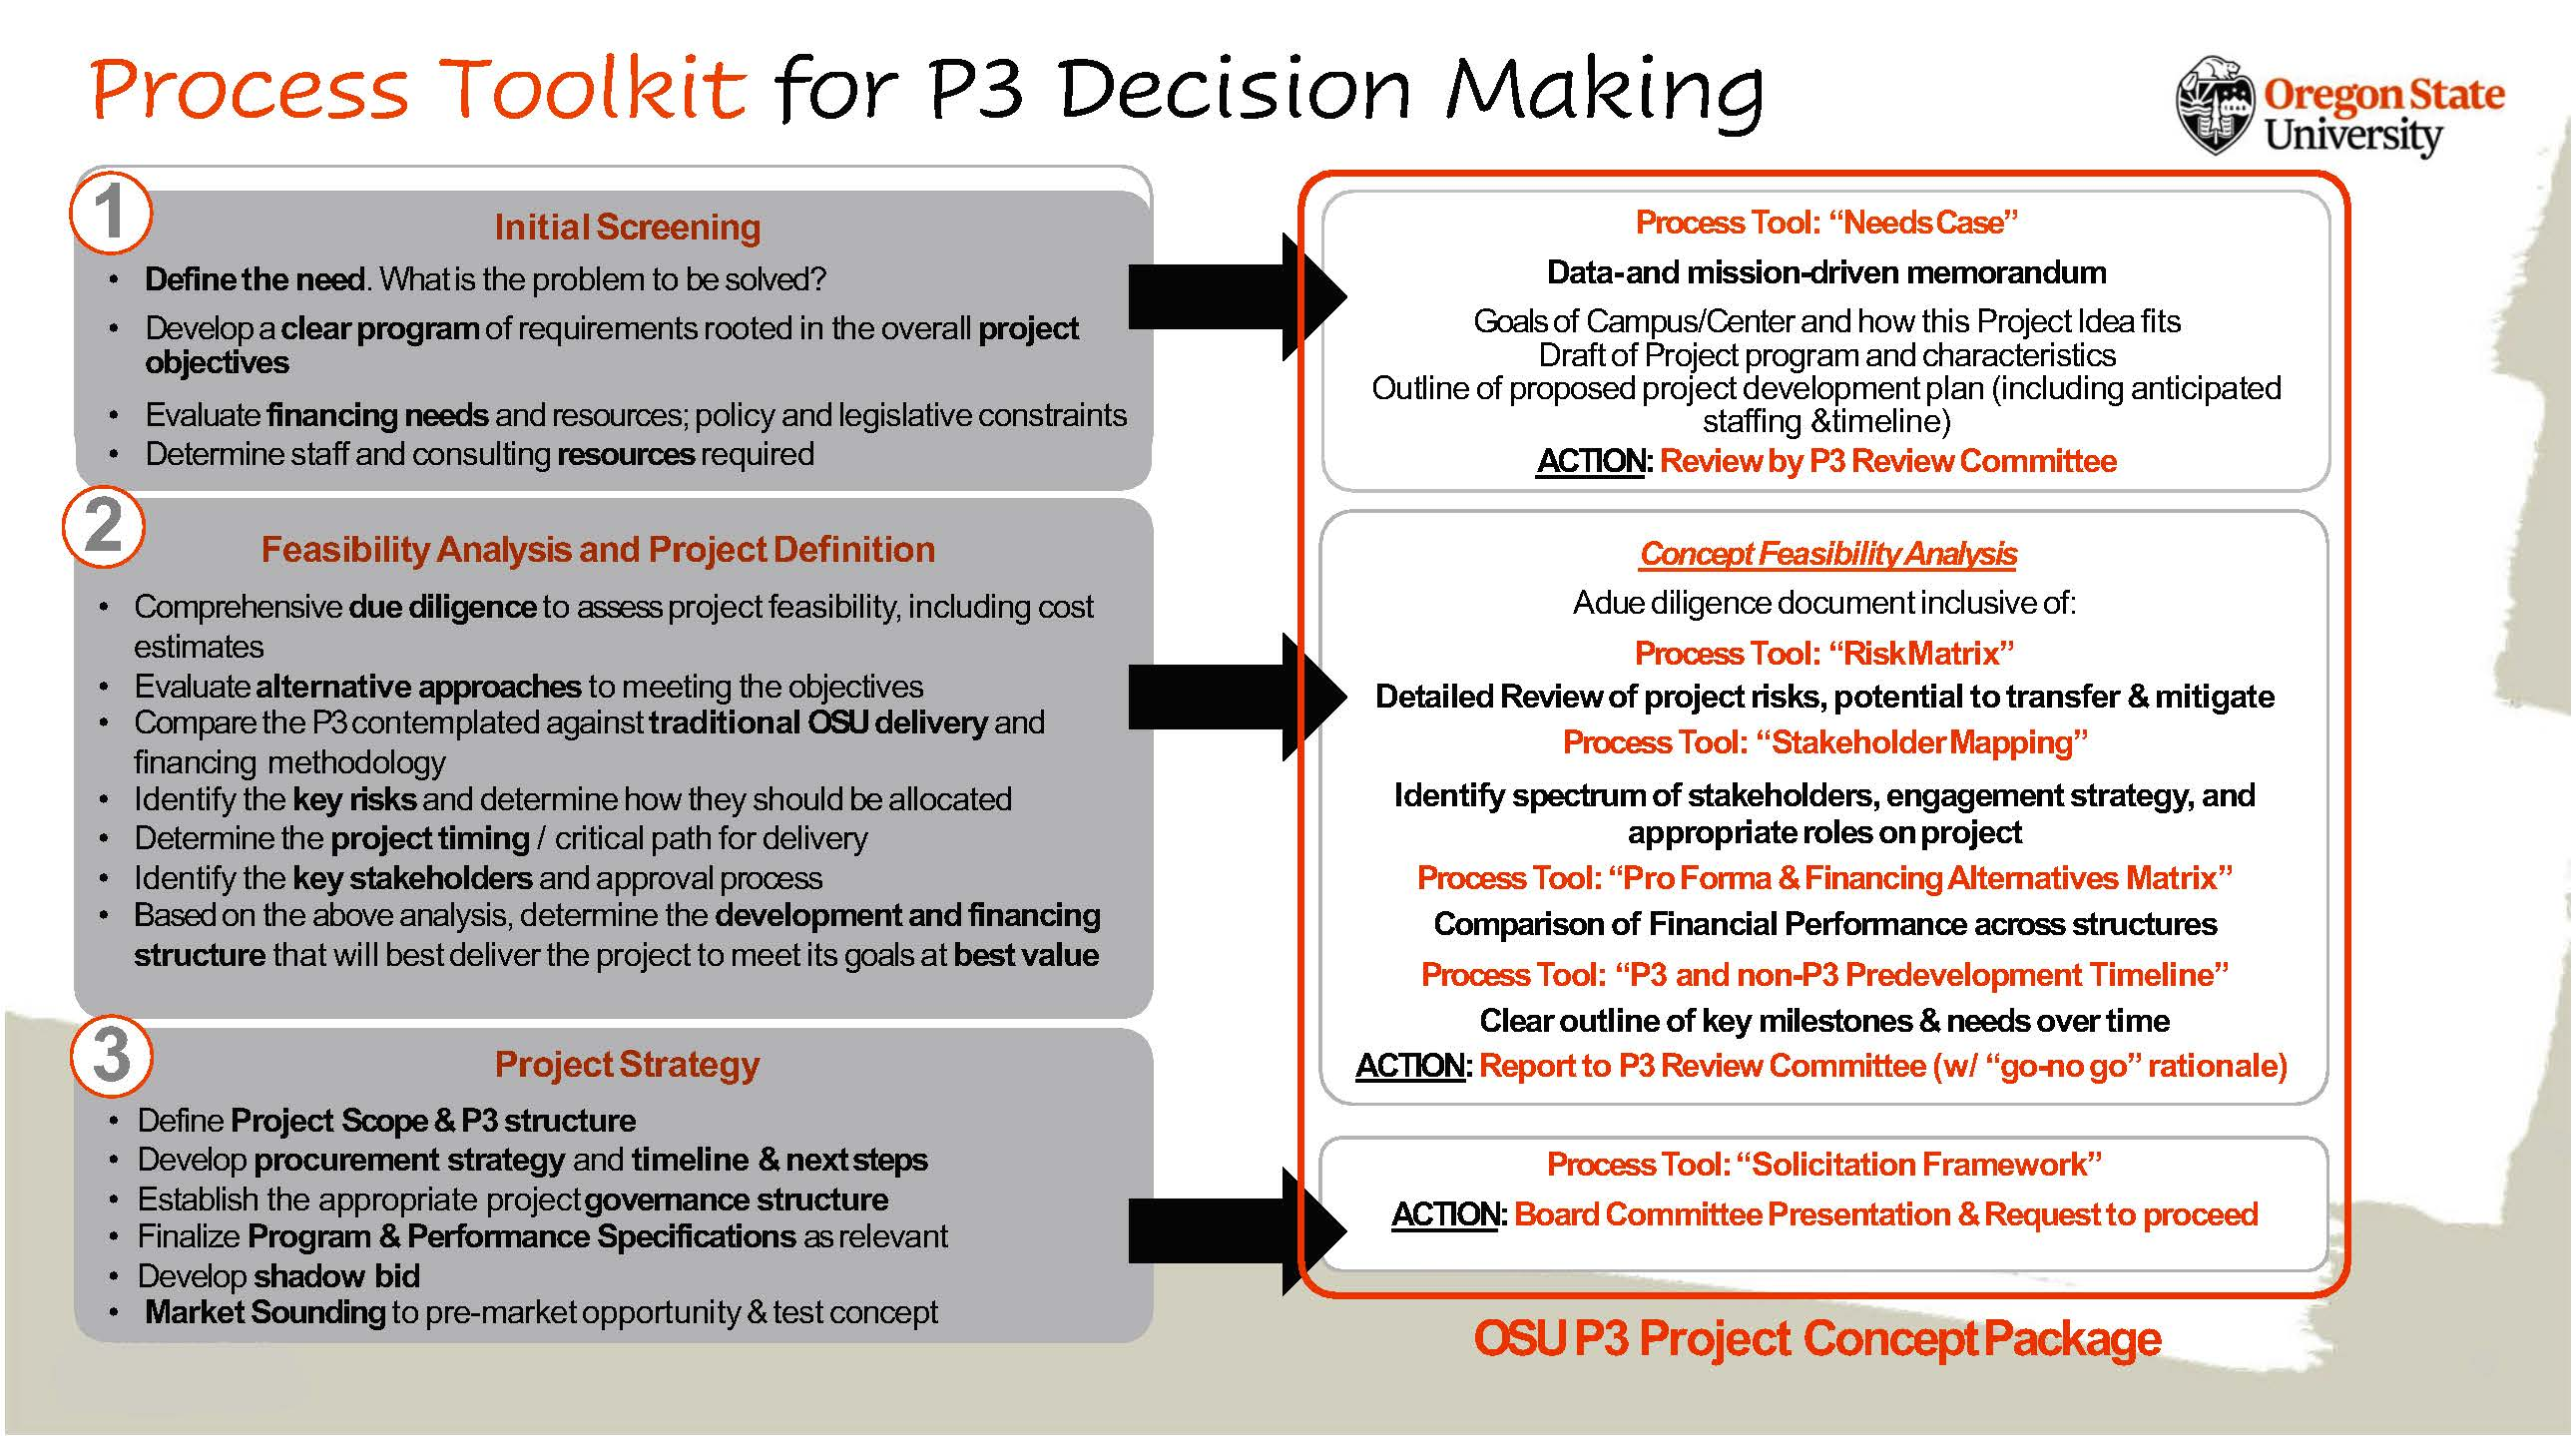 Process Toolkit for P3 Decision Making